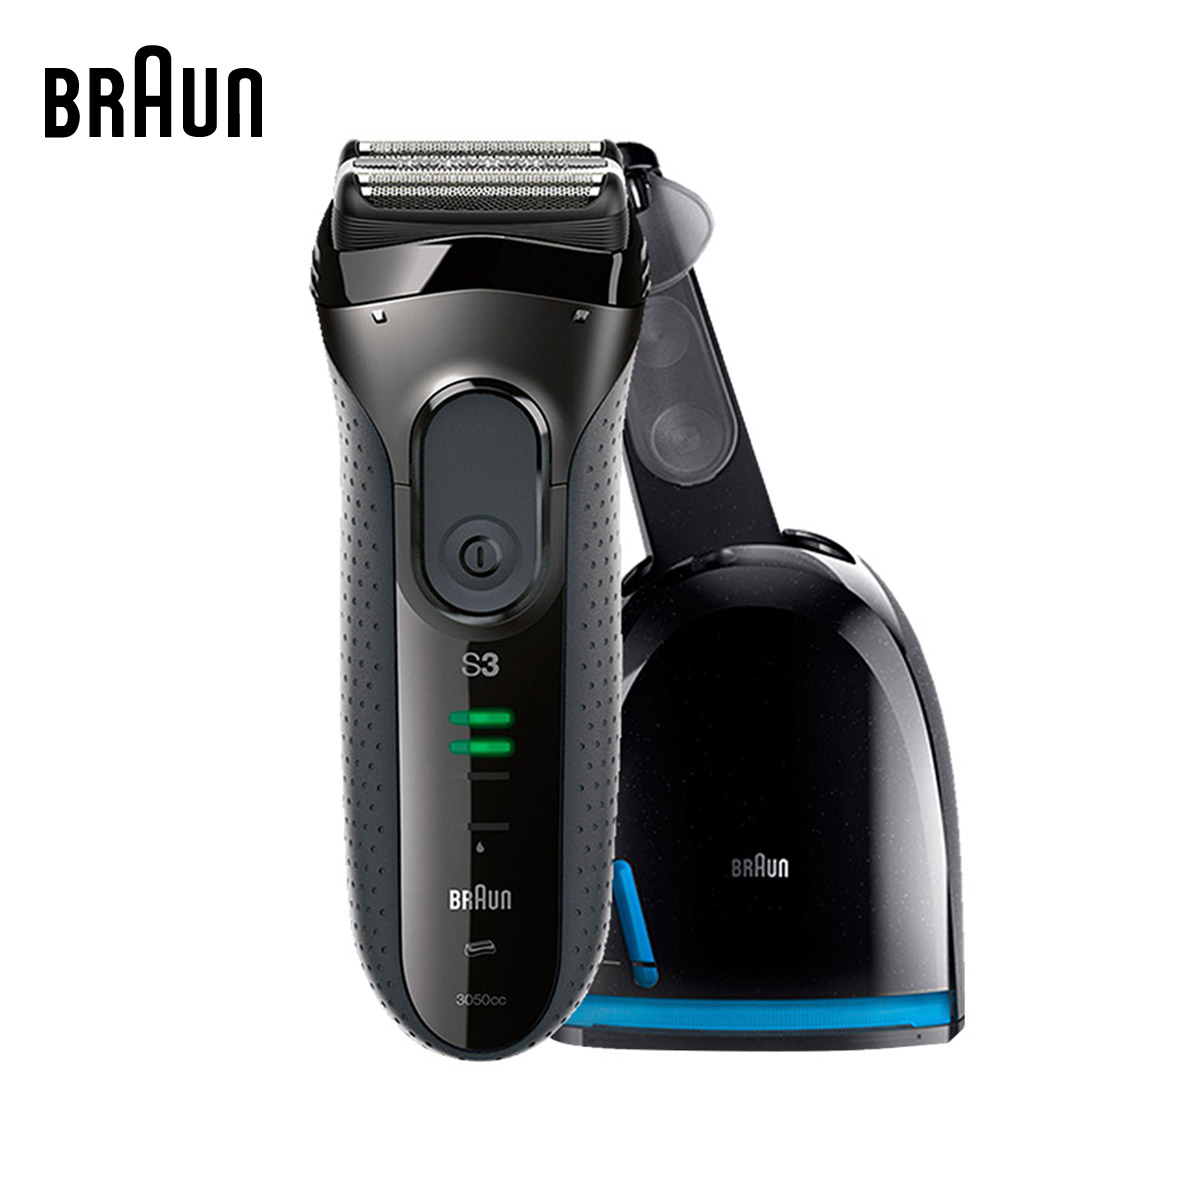 Braun Electric Shavers 3050cc Men Electric Razors Washable  Reciprocating Blades Automatic Cleaning Center braun 3050cc